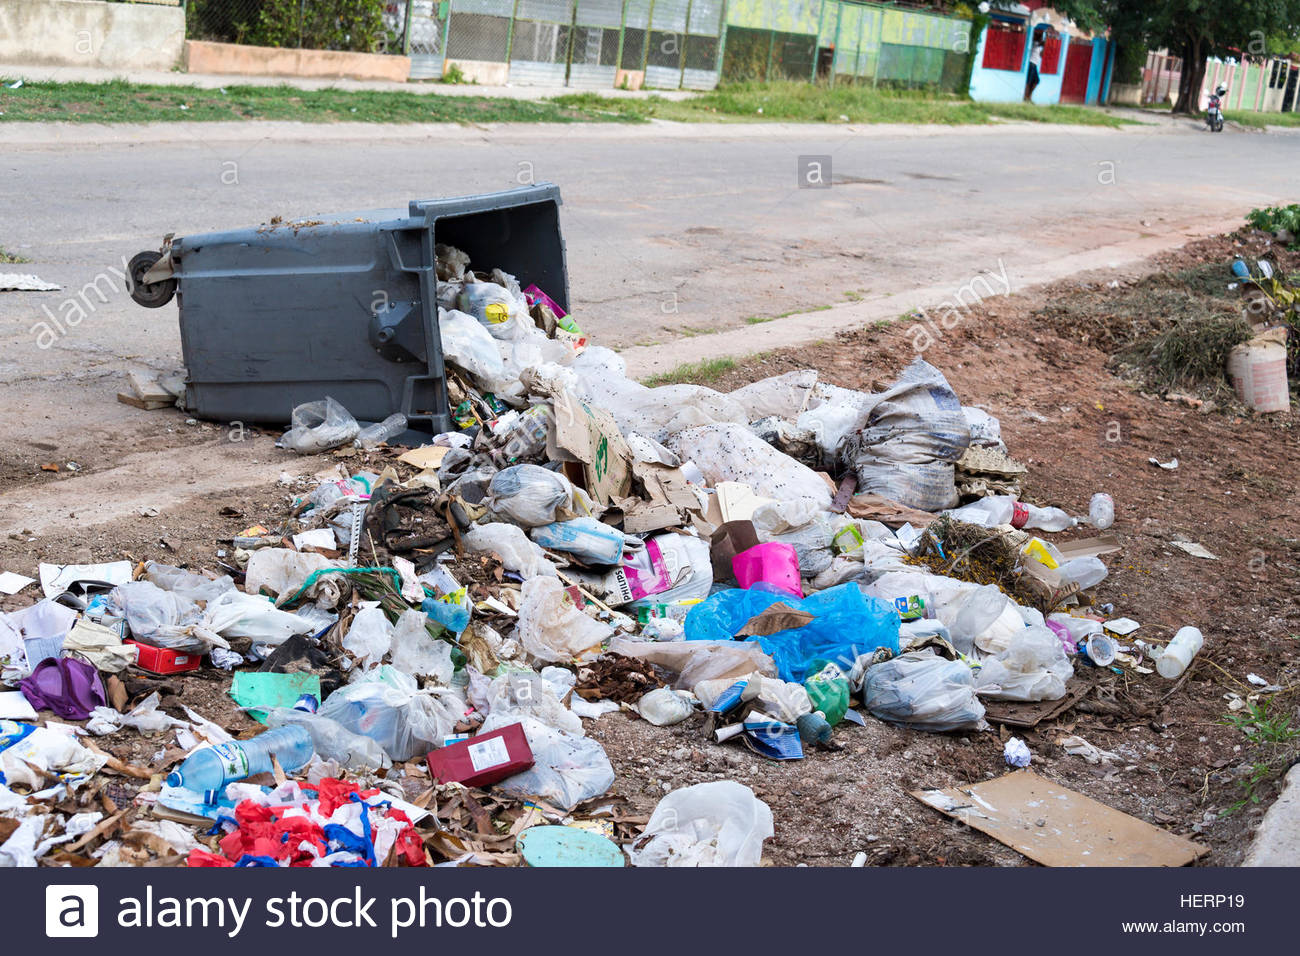 Urban unhealthy condition of Improperly disposed litter waste on street. - Stock Image